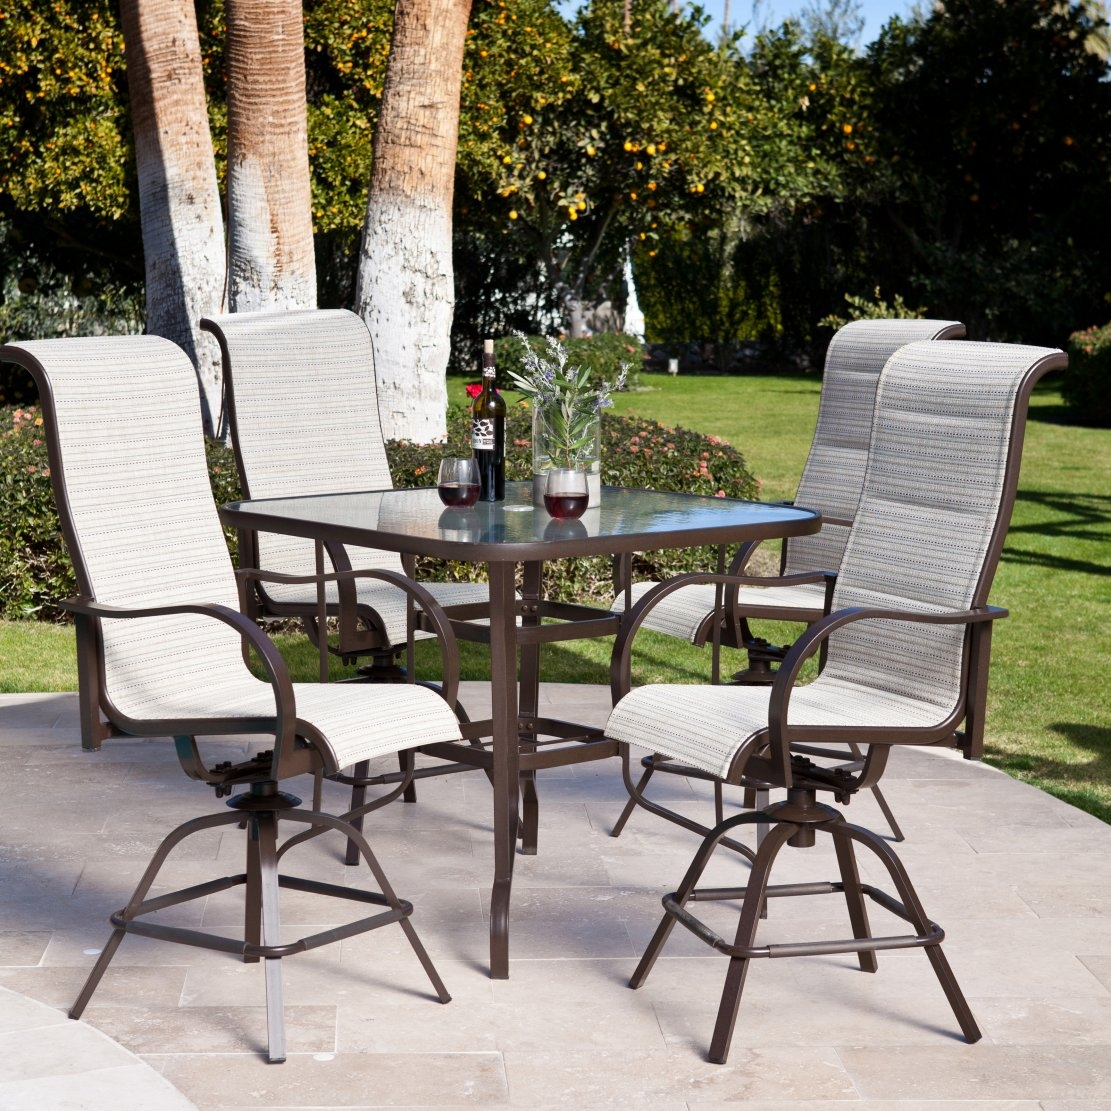 outdoor chair set where to buy covers in cape town creativeworks home decor patio furniture sets